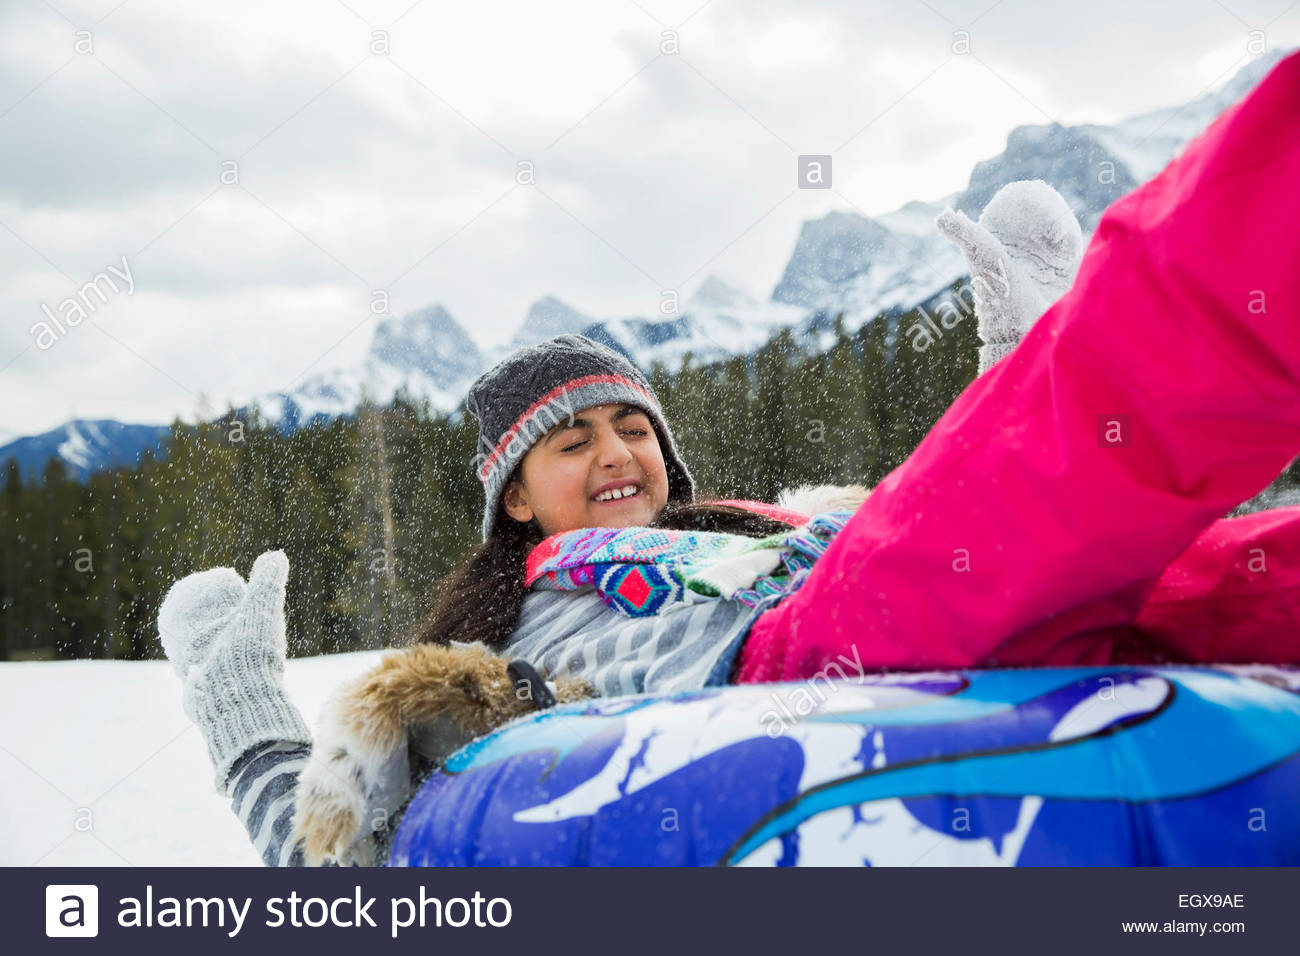 Girl playing on inner tube in snow - Stock Image